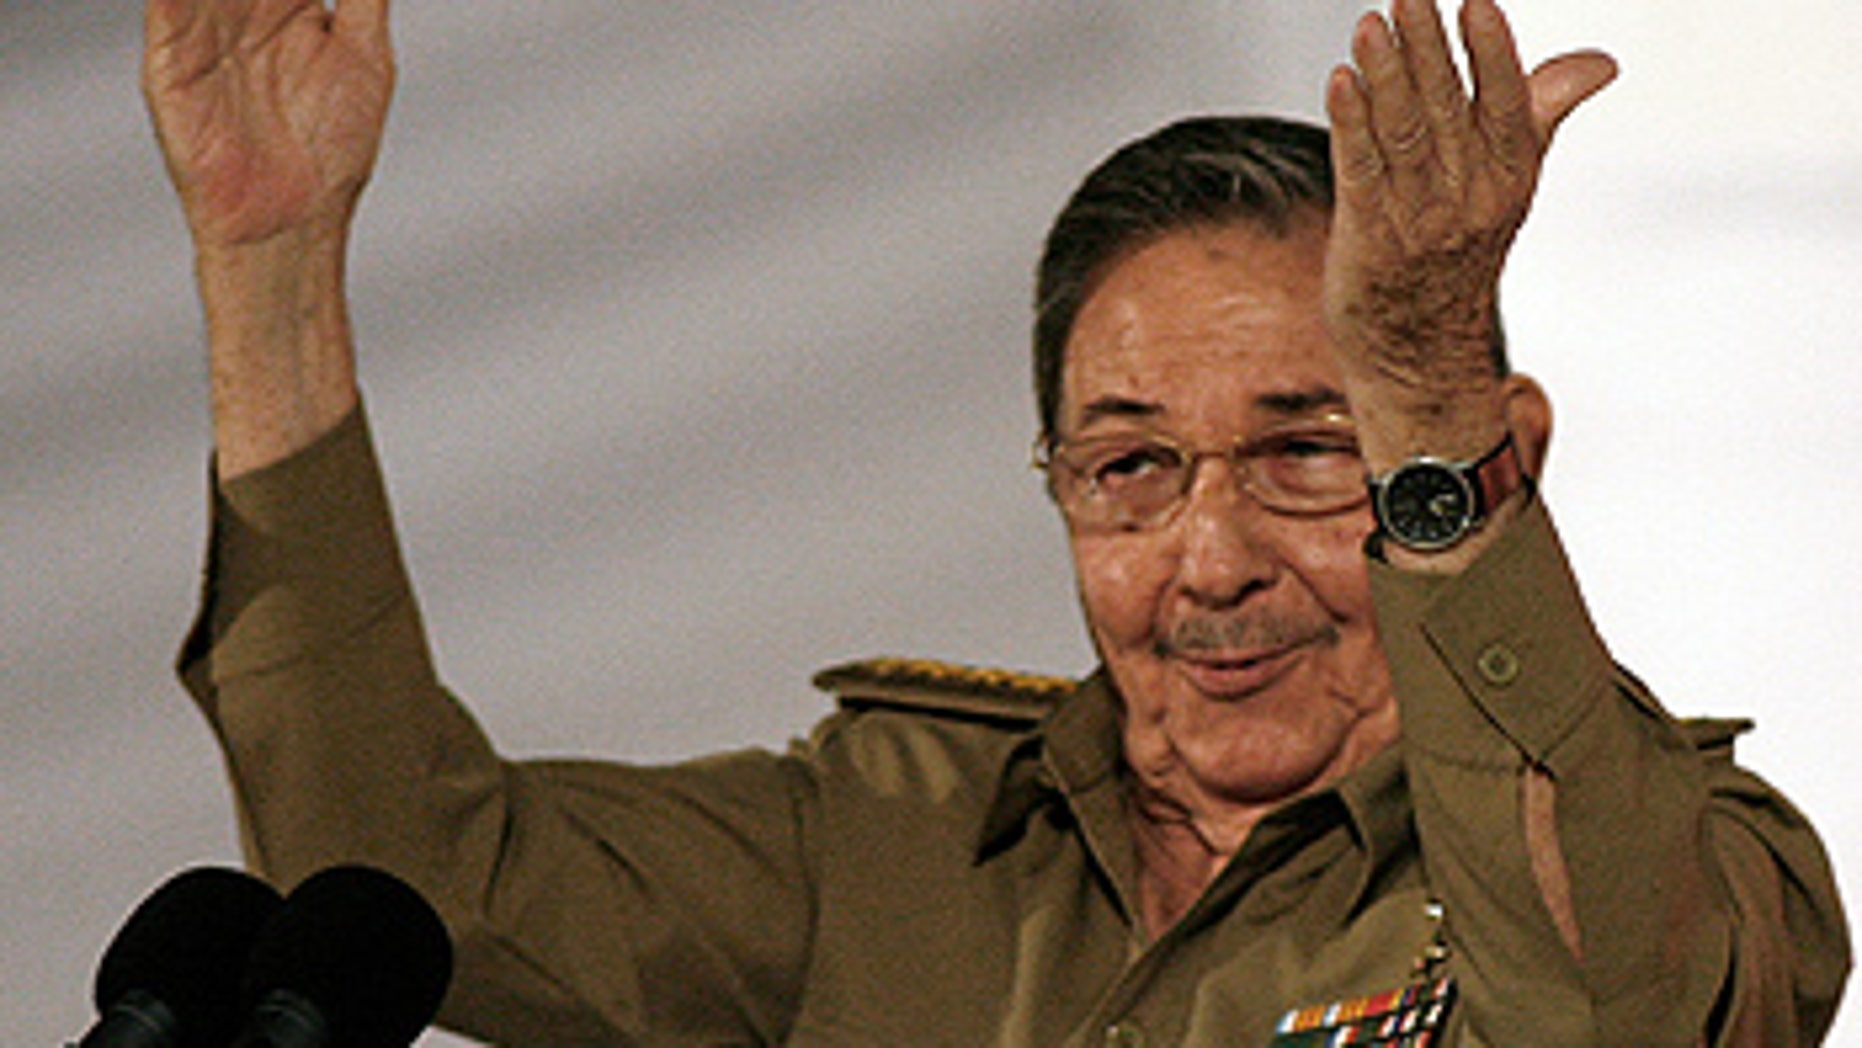 Jan. 1: President of Cuba, Raul Castro speaks during the 50th anniversary celebration of the Cuban Revolution at the main plaza in Santiago, Cuba.